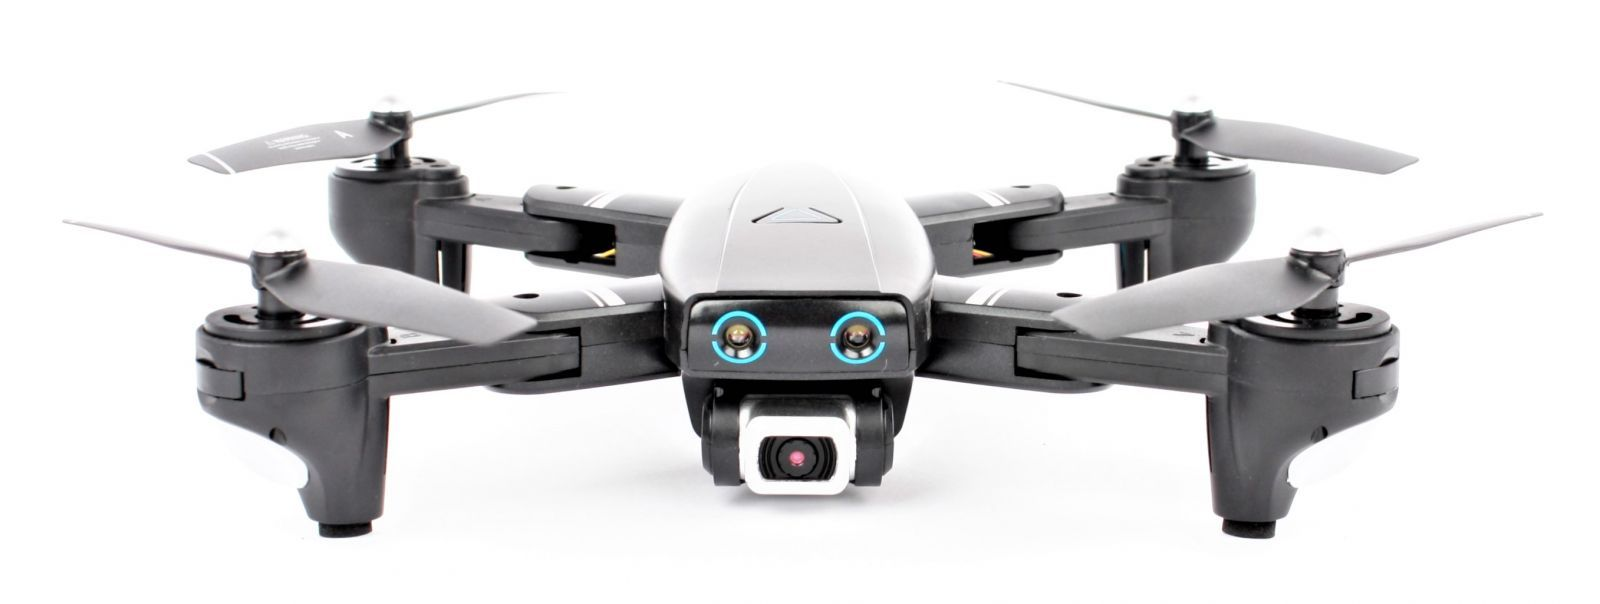 dron-hd-720p-fpv-4ch-24ghz-led-wifi